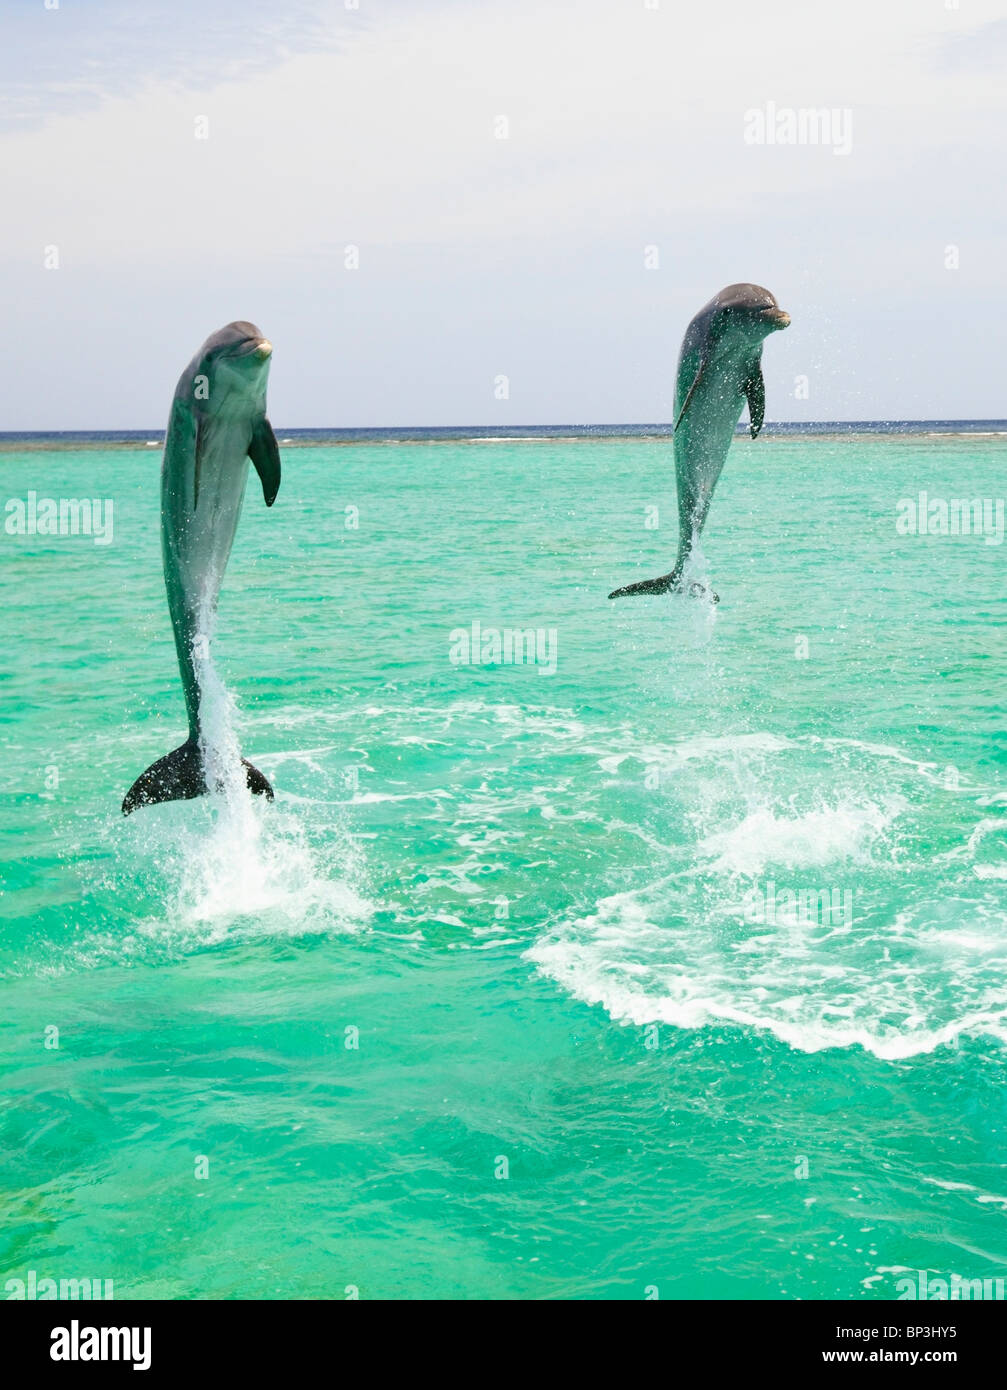 Two Dolphins Jumping Out Water Stock Photos & Two Dolphins Jumping ...